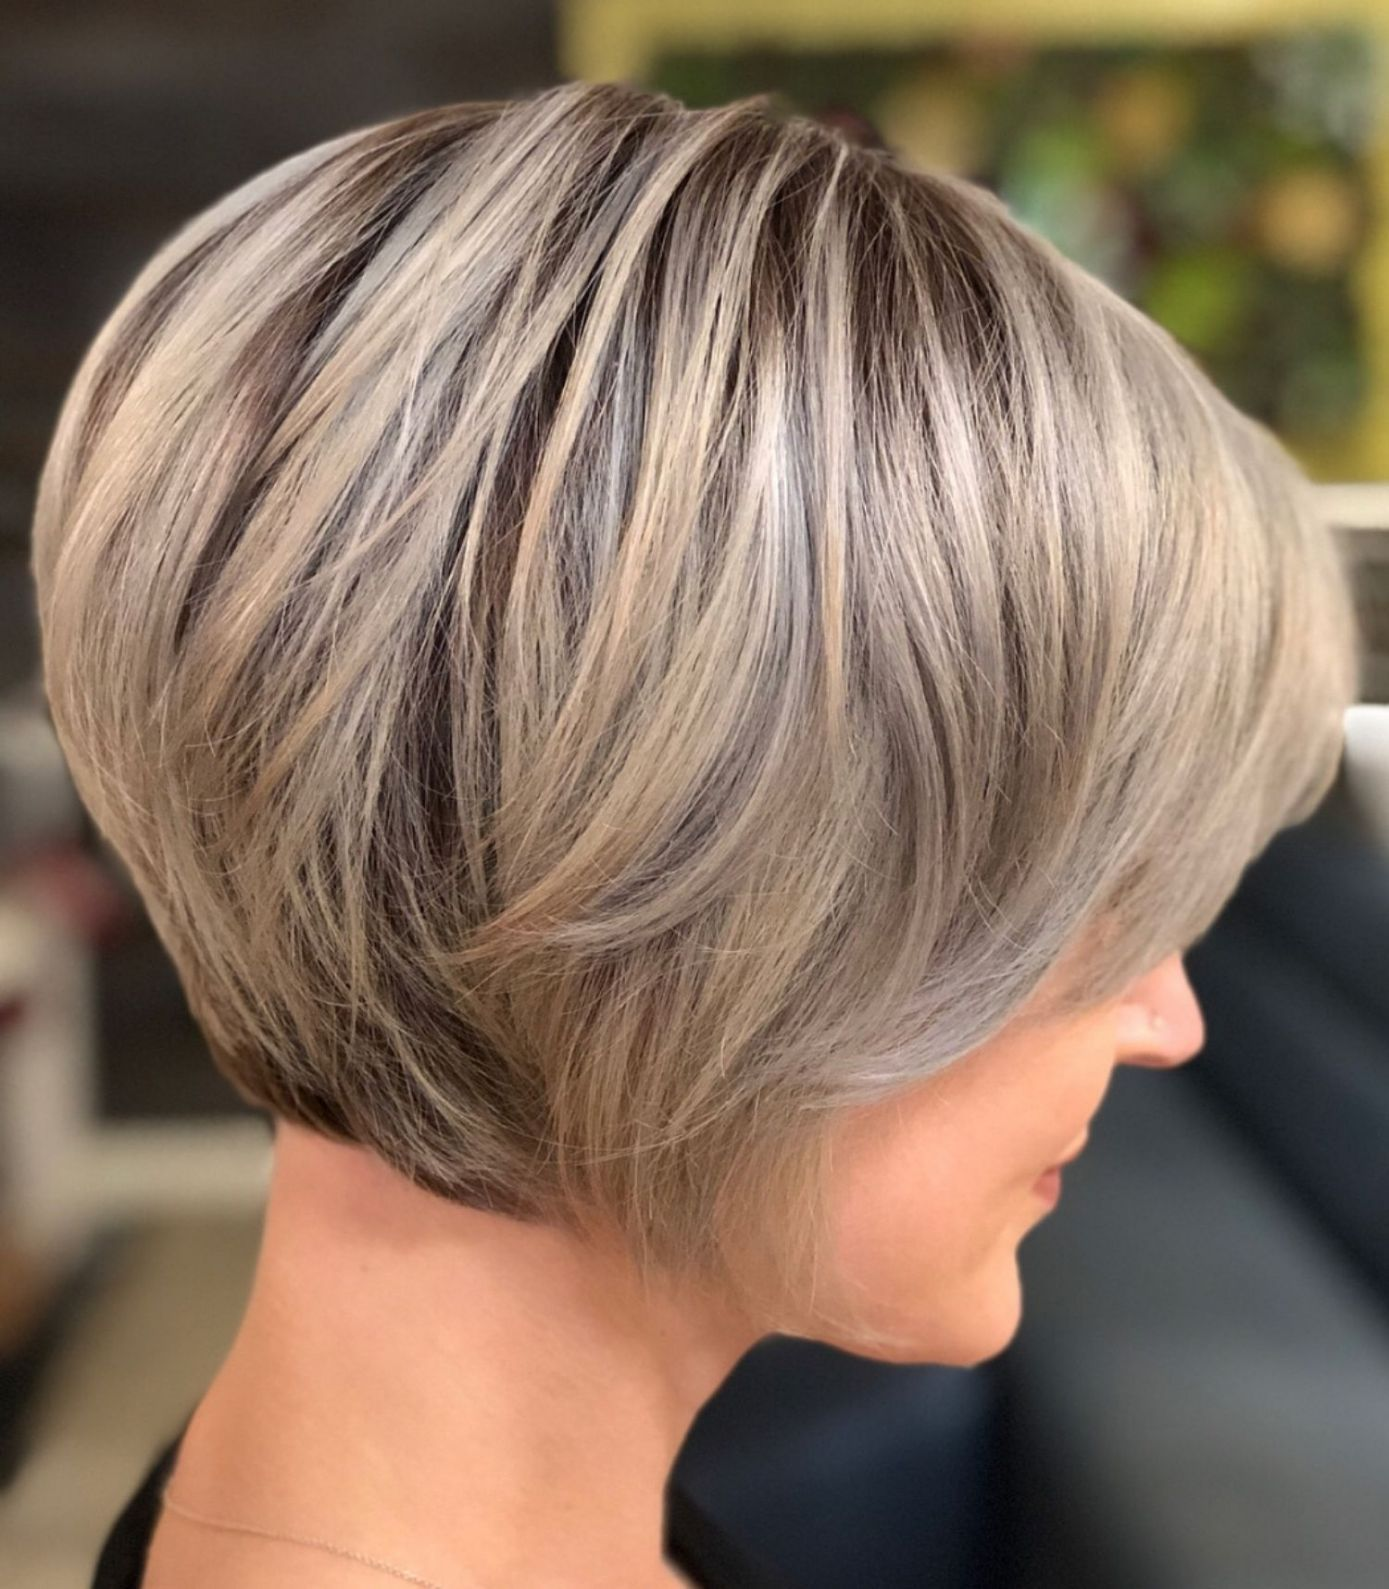 70 Cute And Easy To Style Short Layered Hairstyles Kapsels Kapsels Voor Kort Haar Kort Haar Kapsels